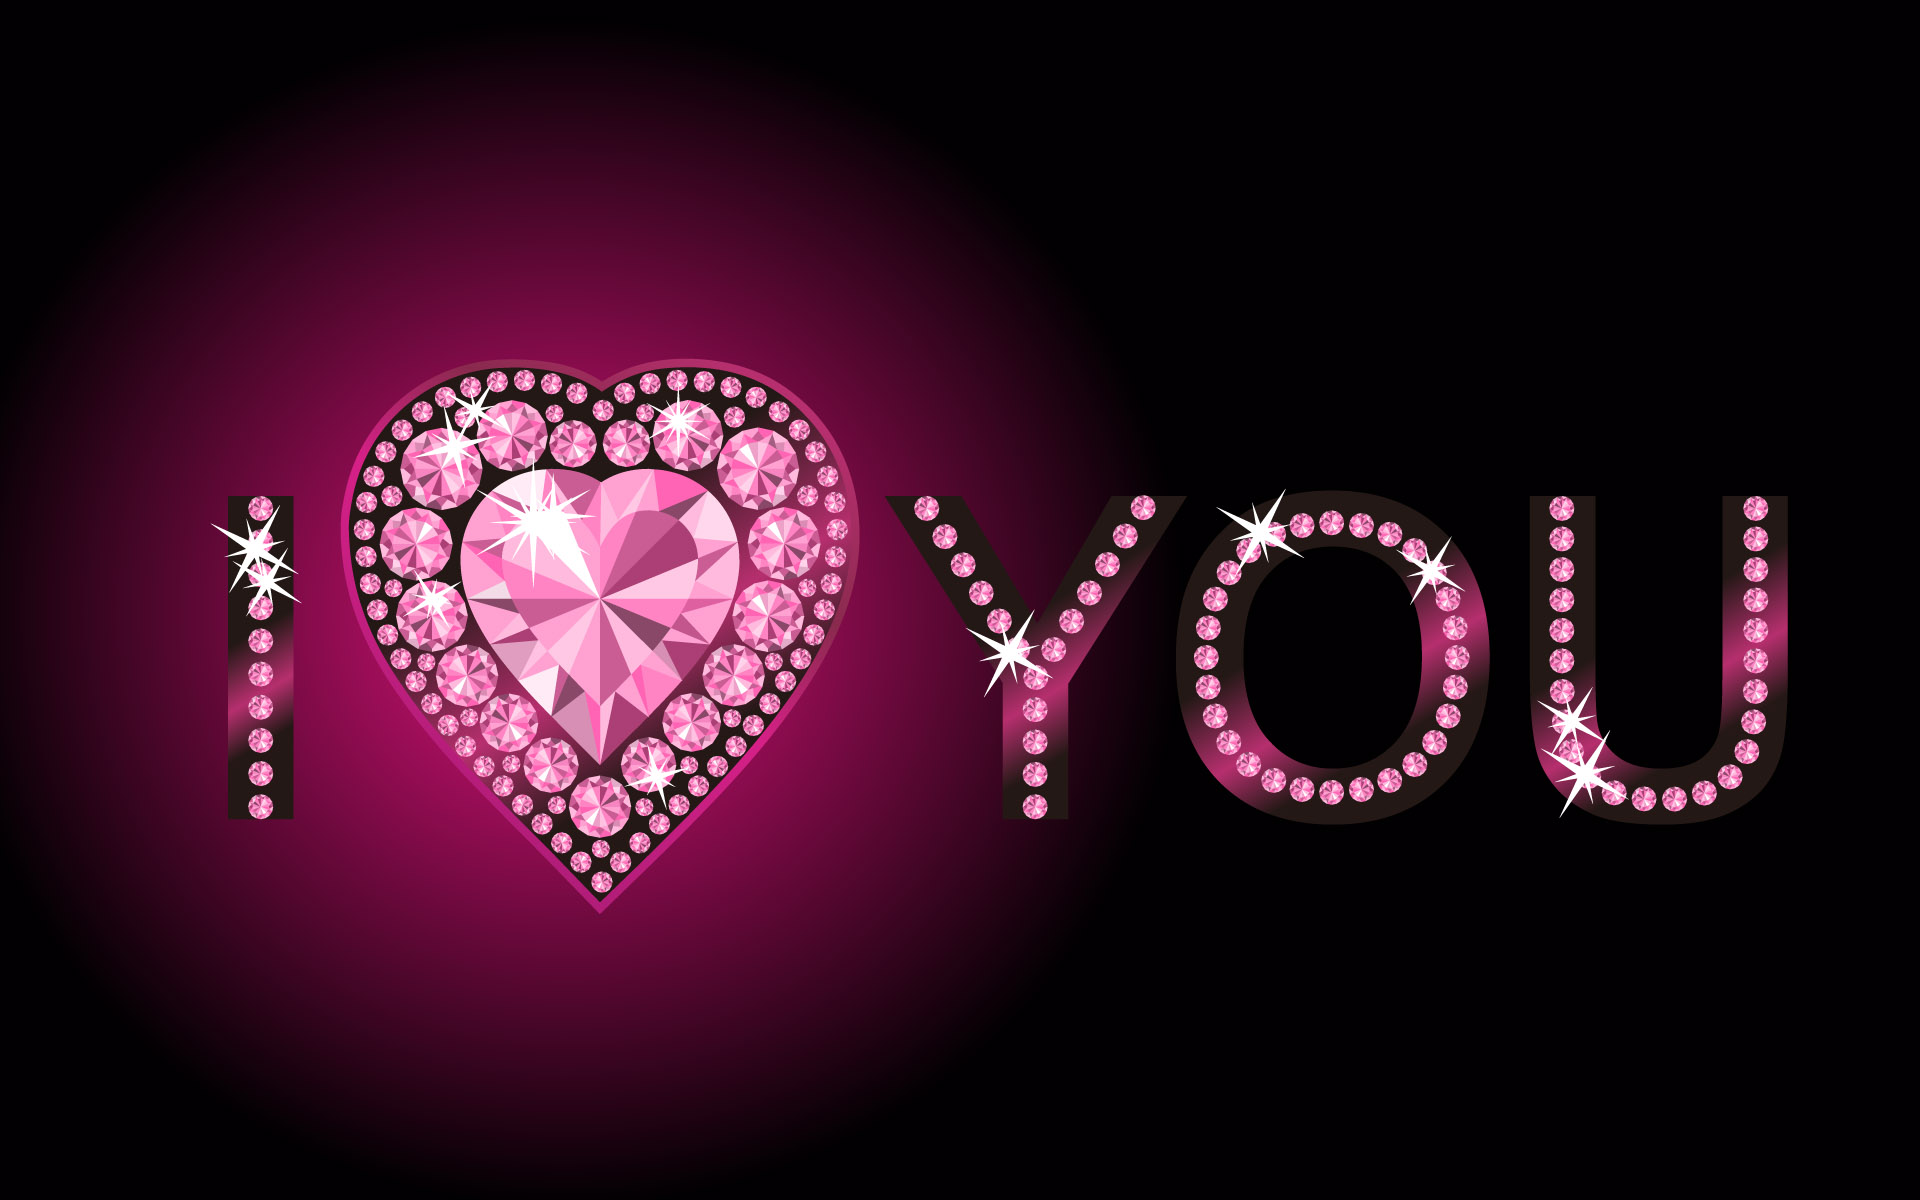 coeur I love you : wallpaper, fond d ?cran, image, photo